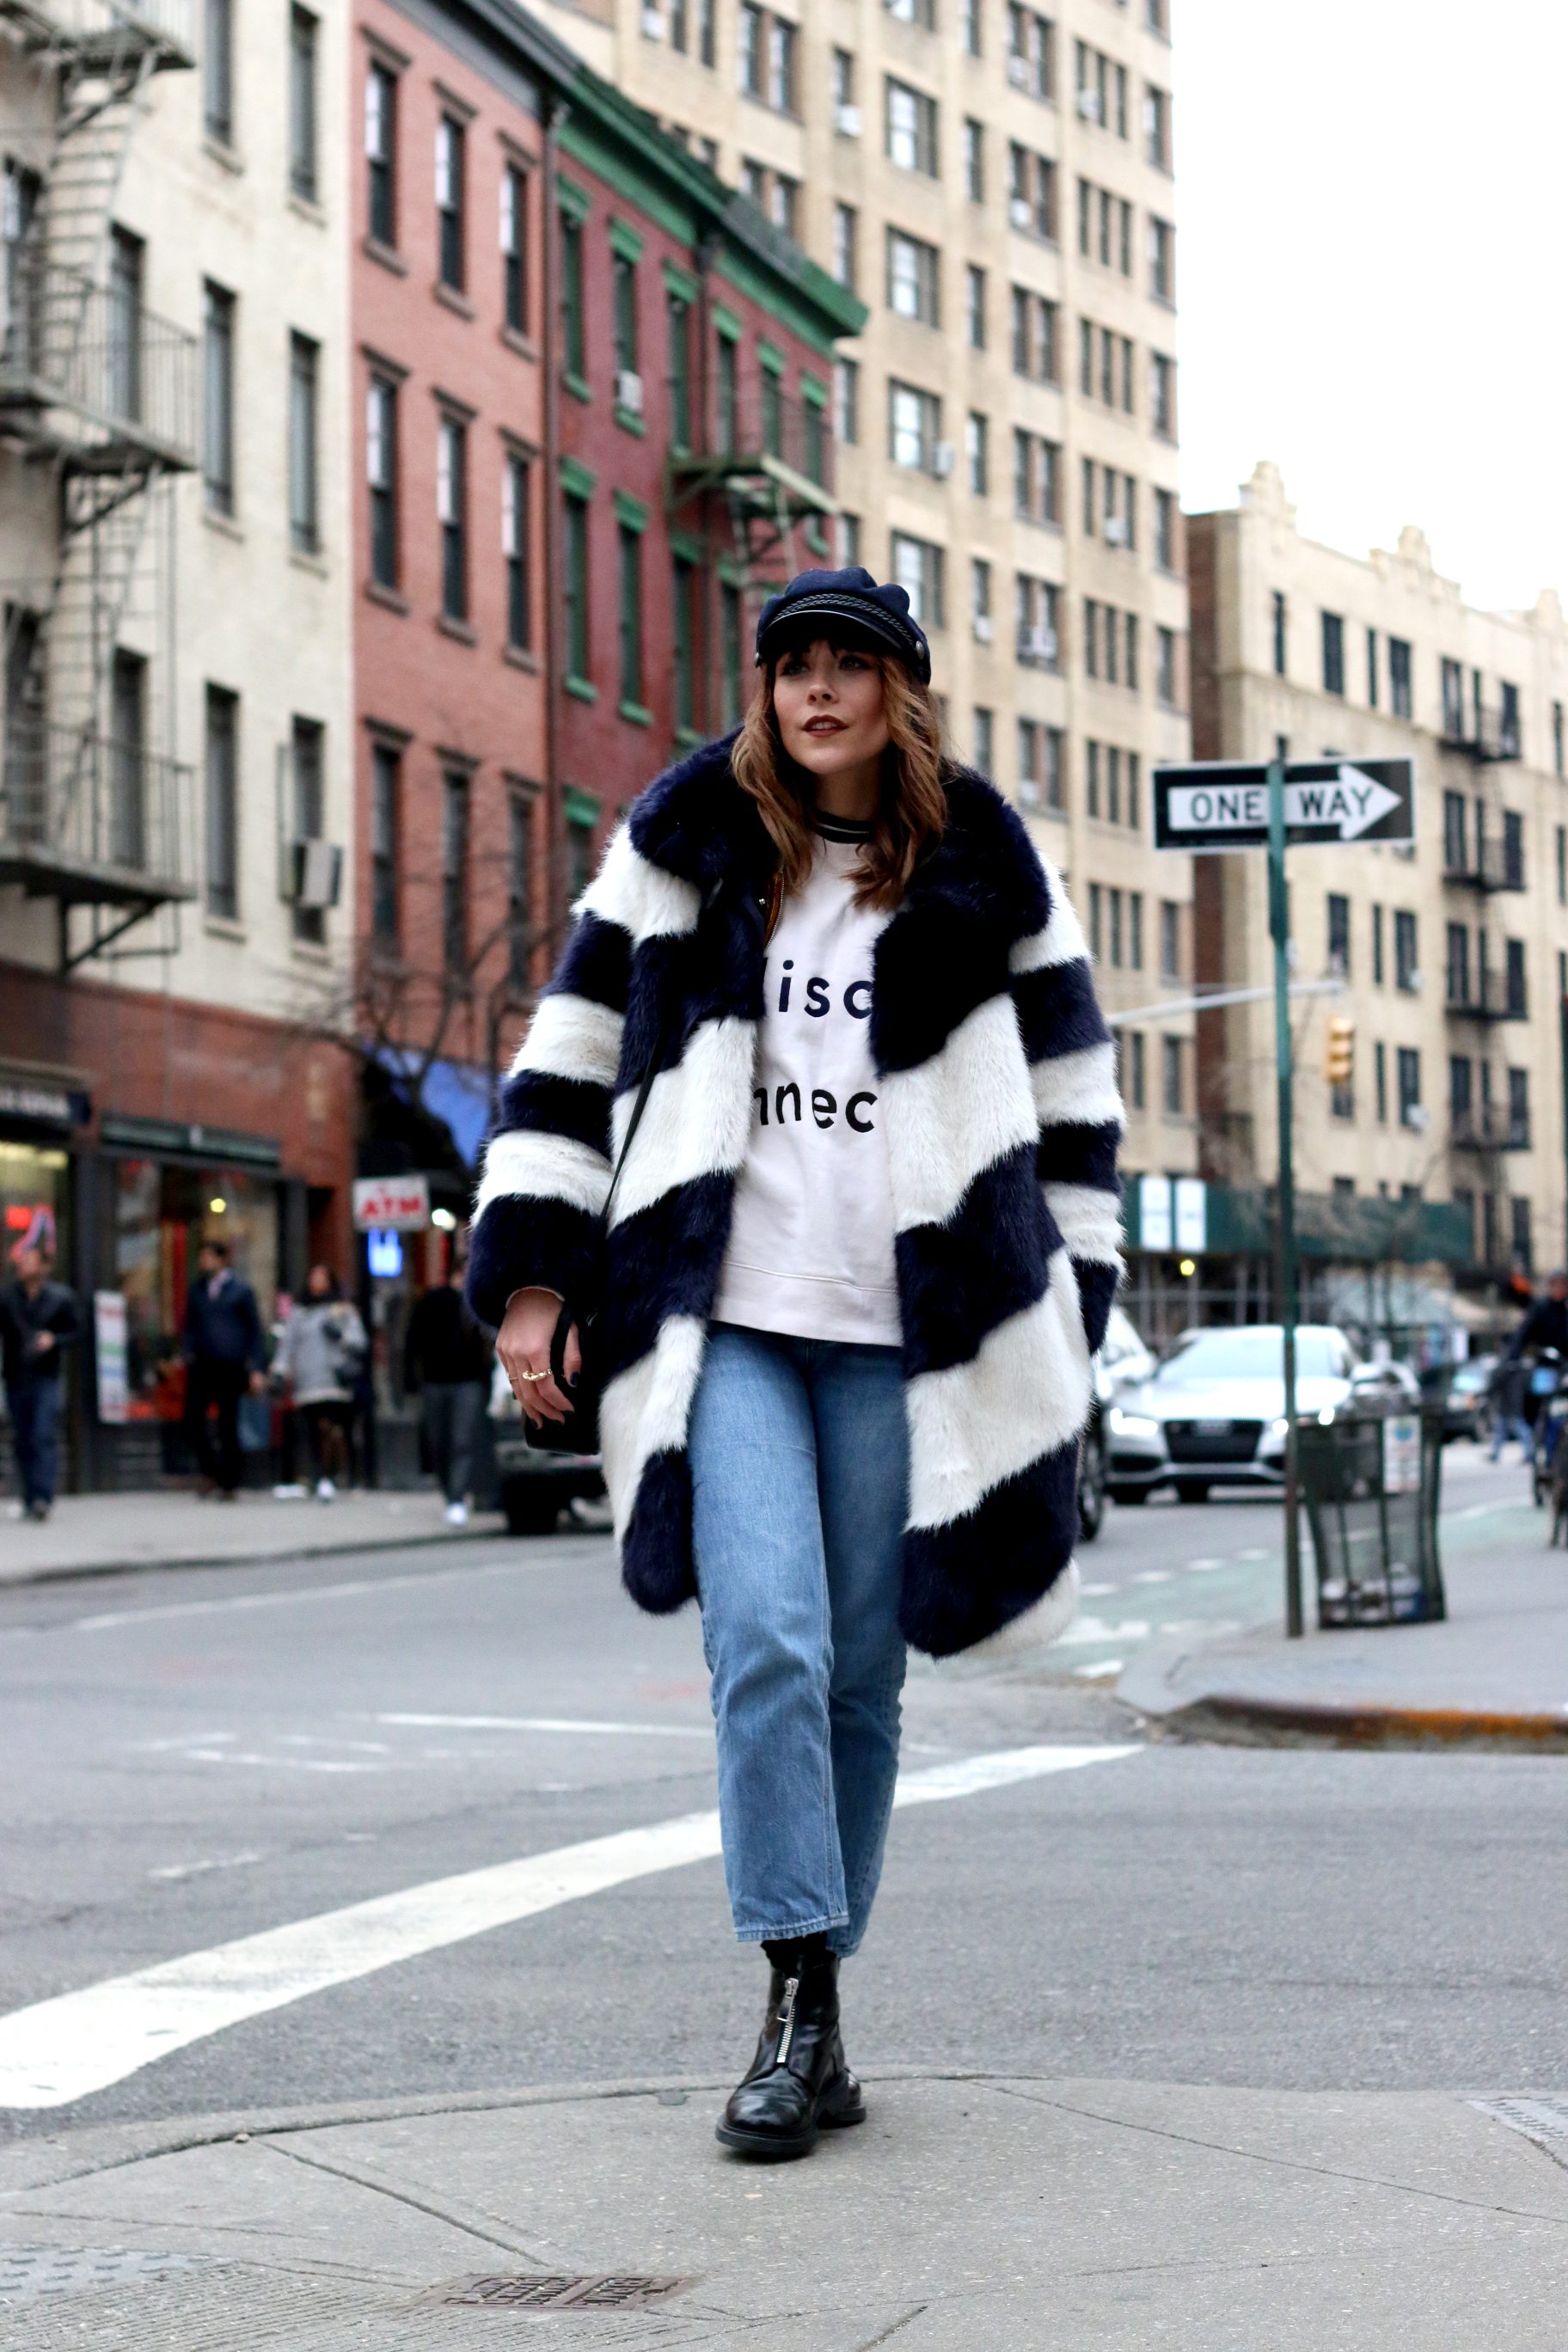 MEGAN ELLABY SHOWING WHAT TO WEAR IN NEW YORK